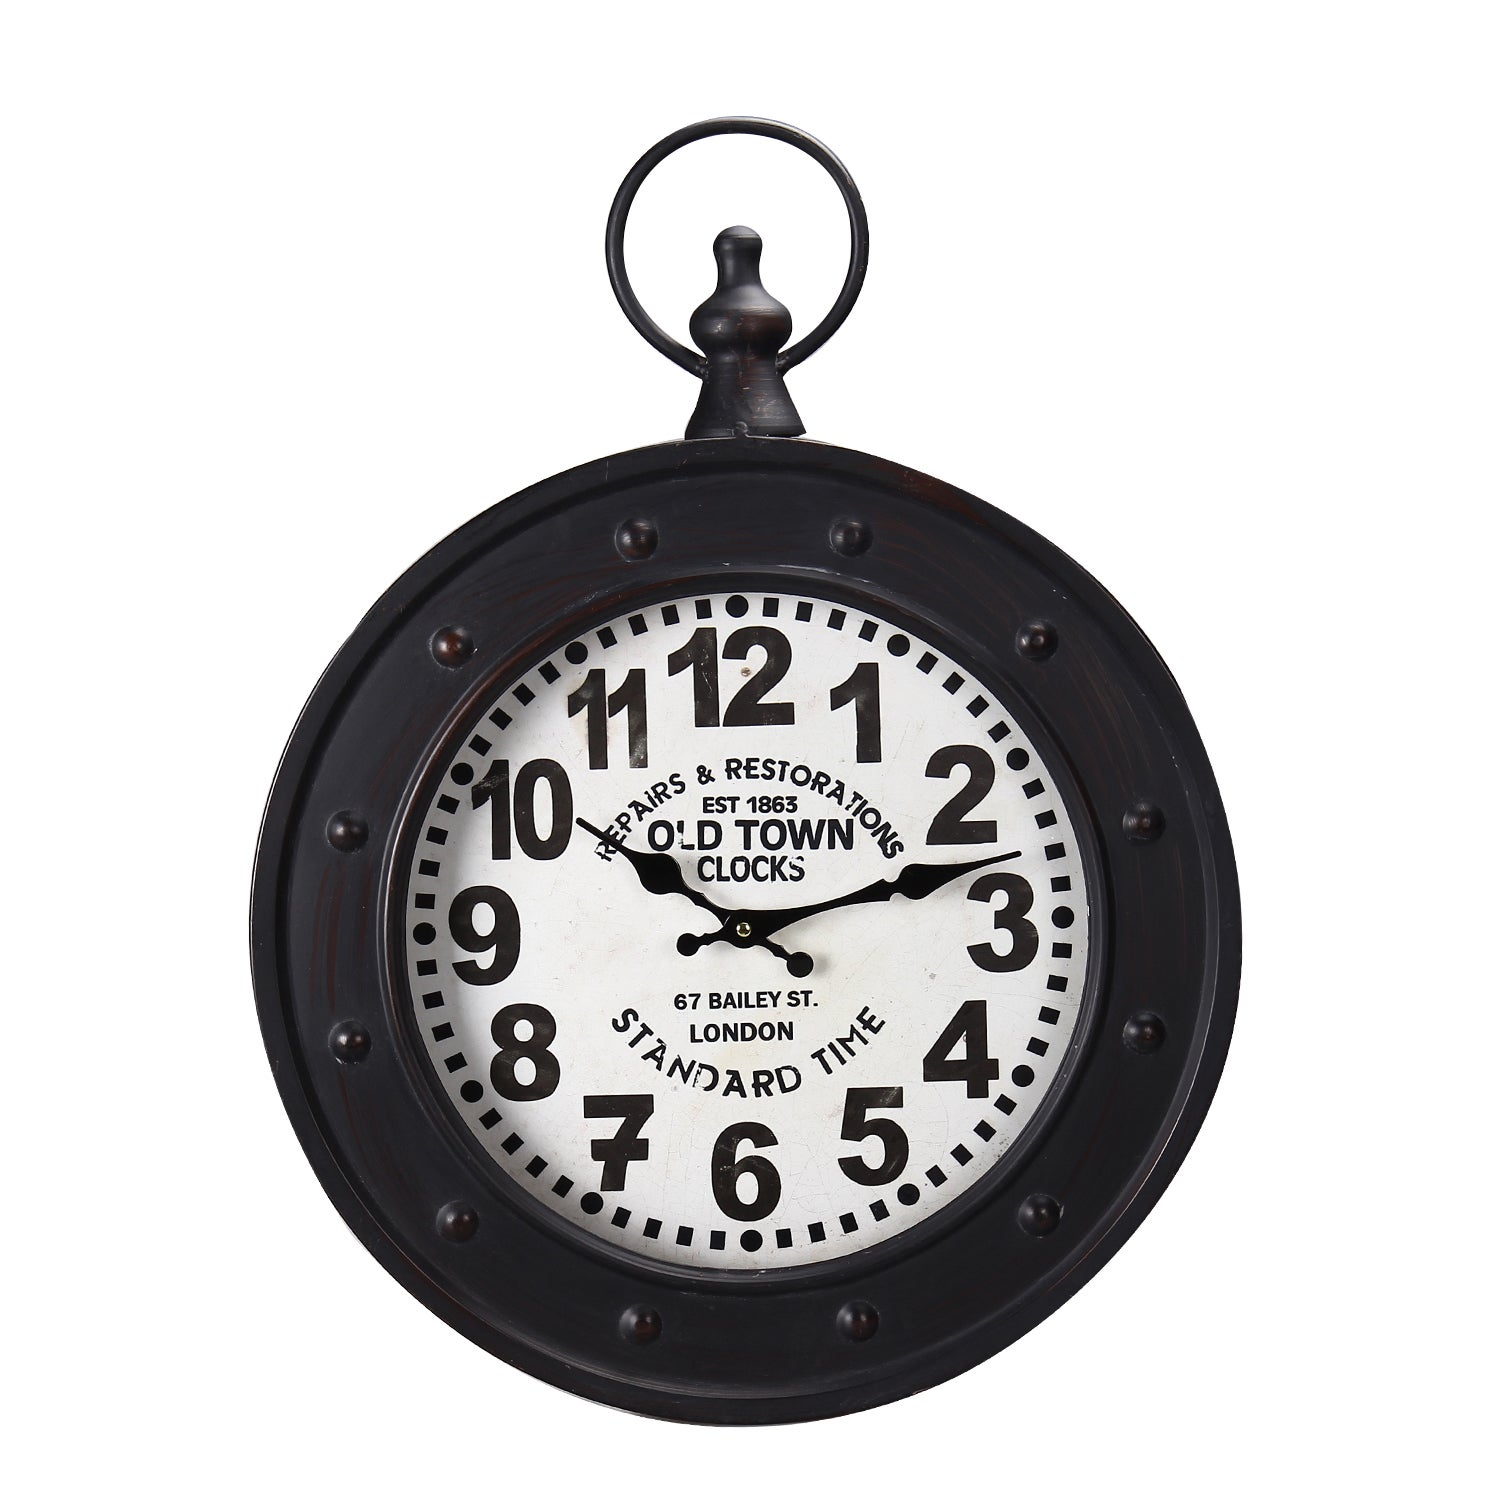 Adeco Black Iron Vintage Inspired Old Town Clocks Pocket Watch Style Hanging Wall Clock Free Shipping Today 9653454